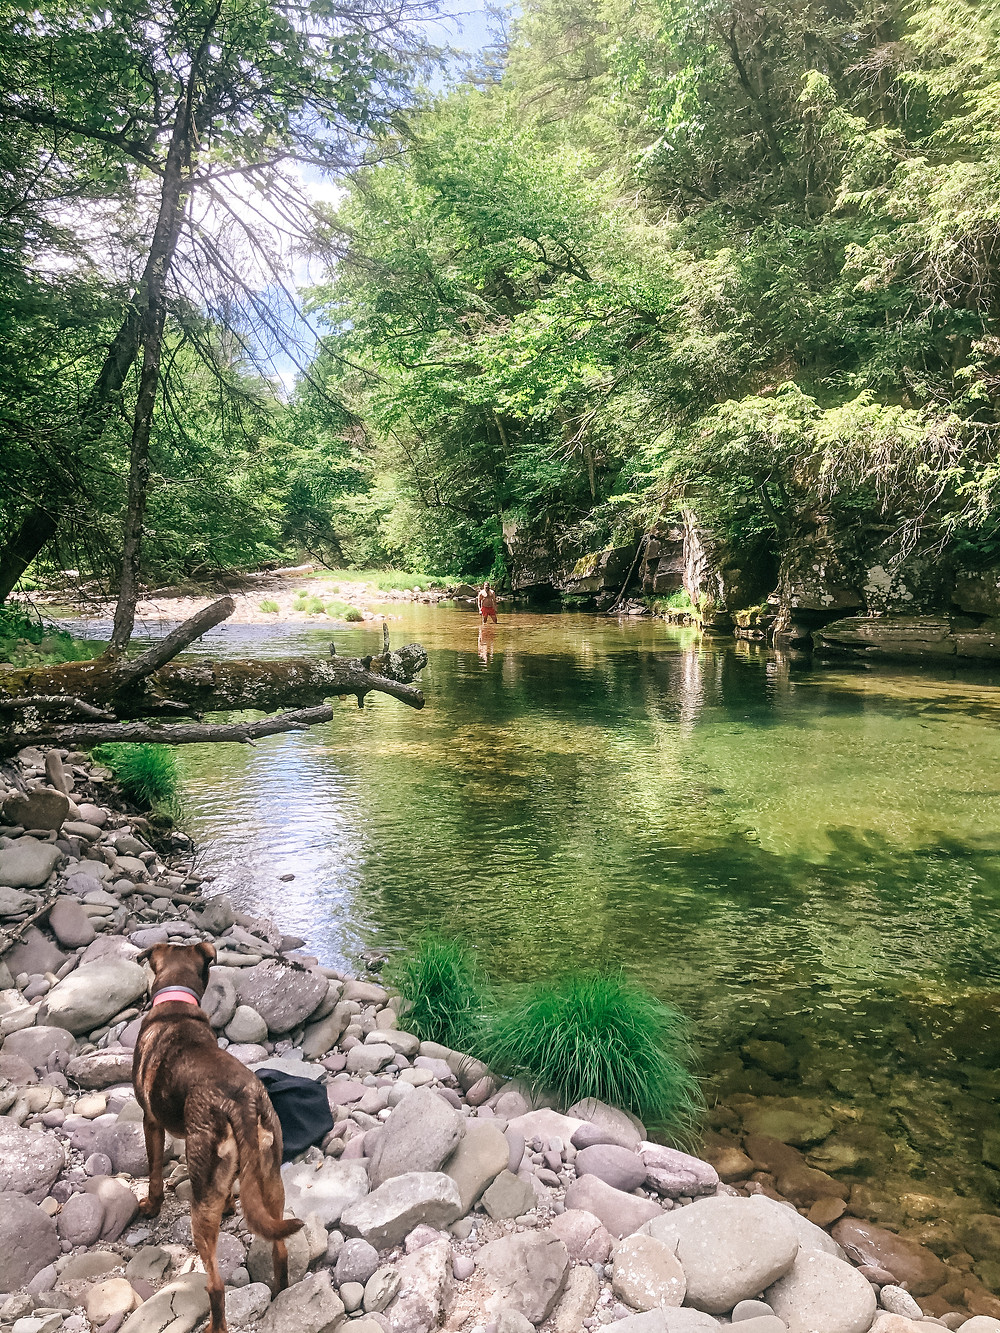 A dog looking out over a natural swimming hole with a man in the distance